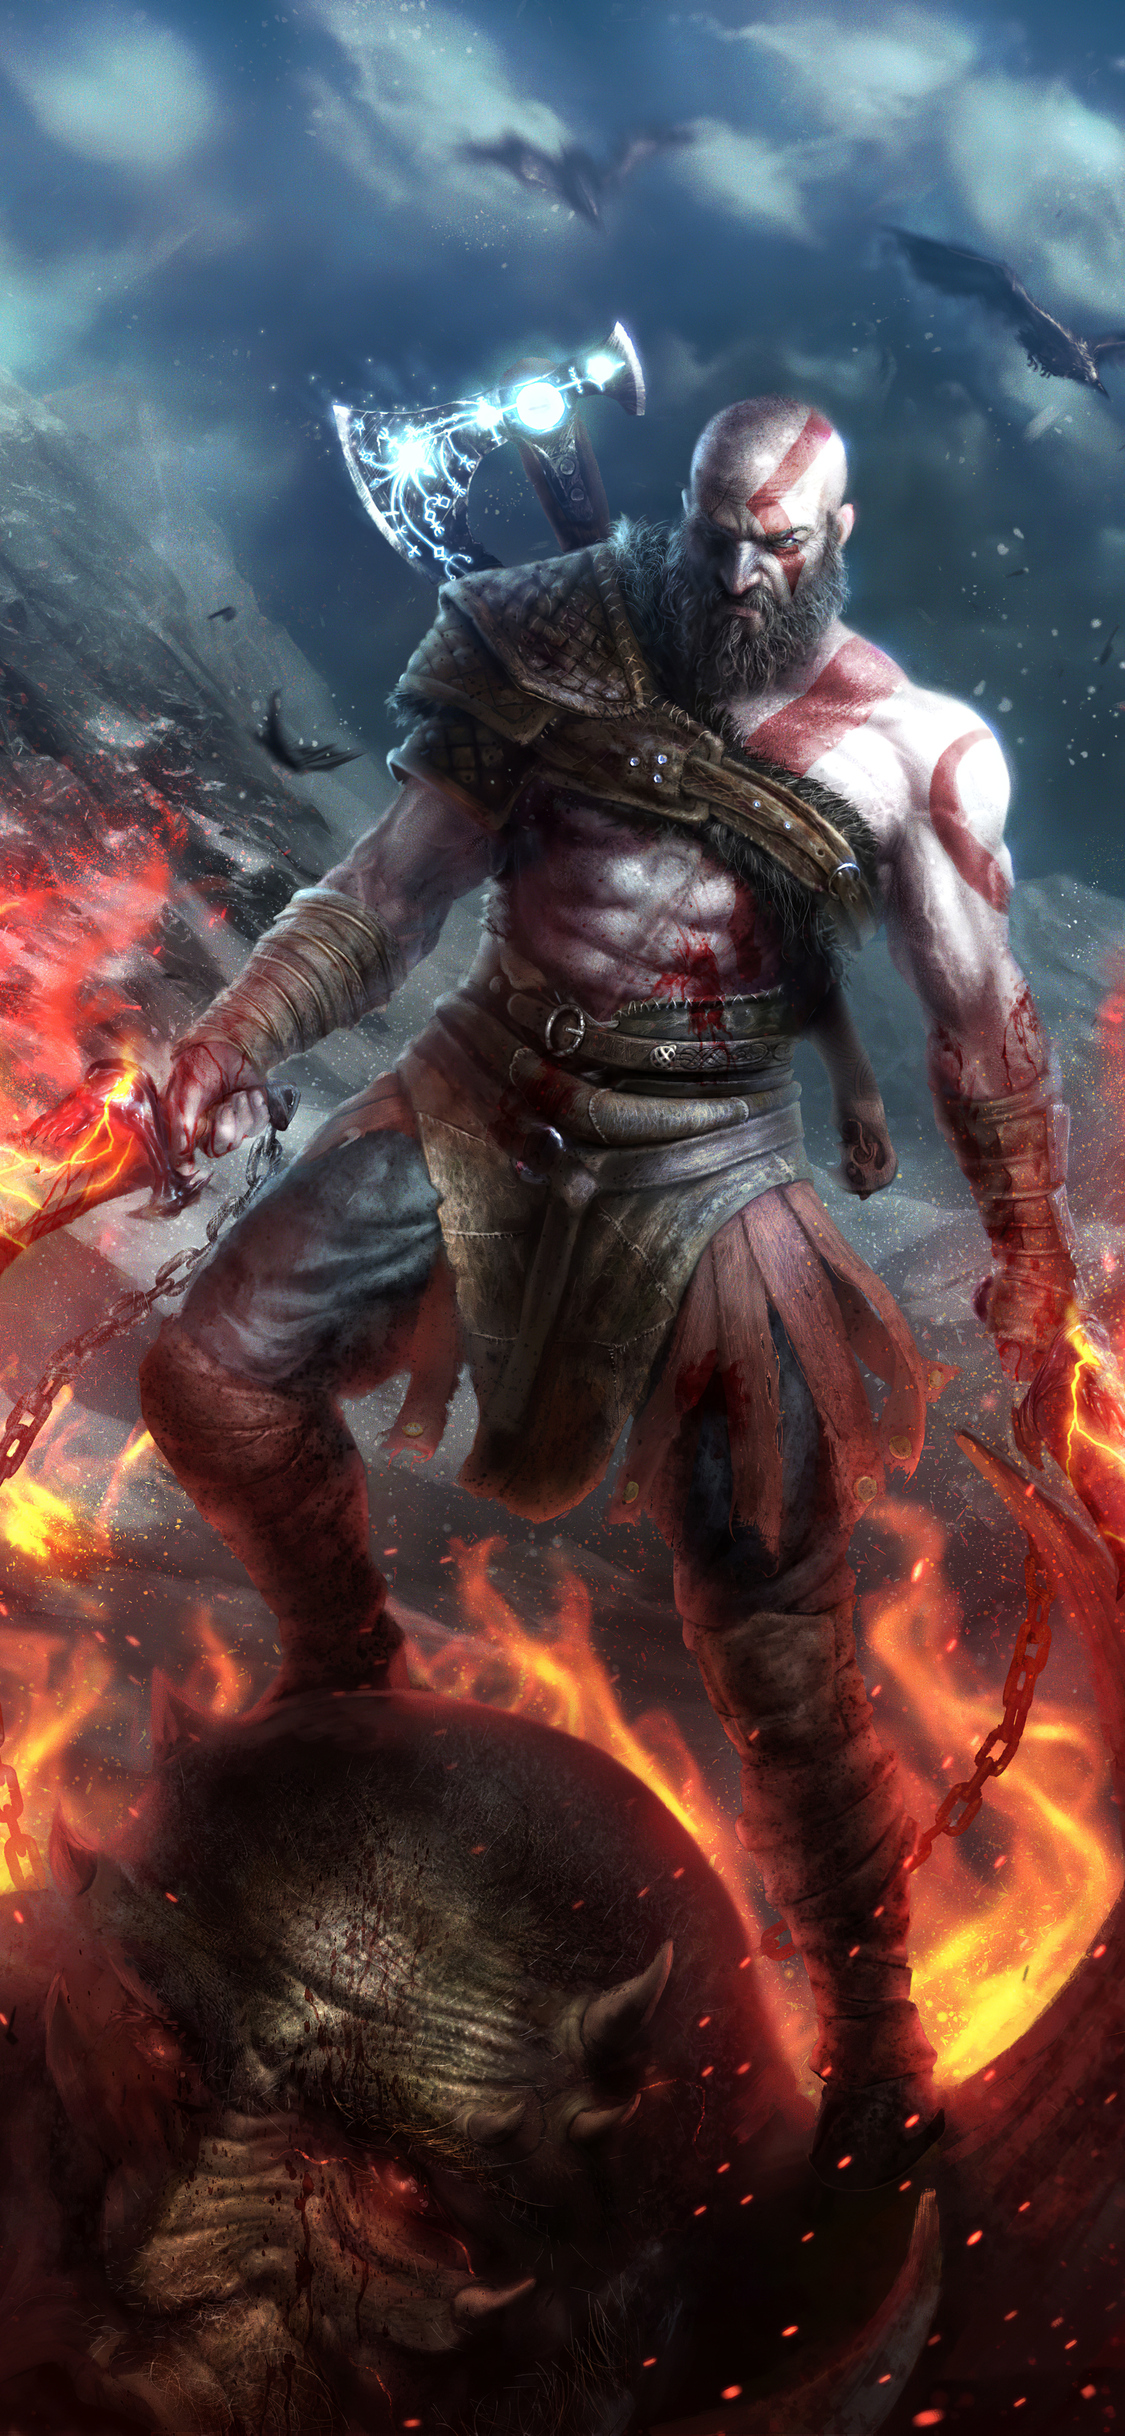 1125x2436 Kratos God Of War Art 4k Iphone Xs Iphone 10 Iphone X Hd